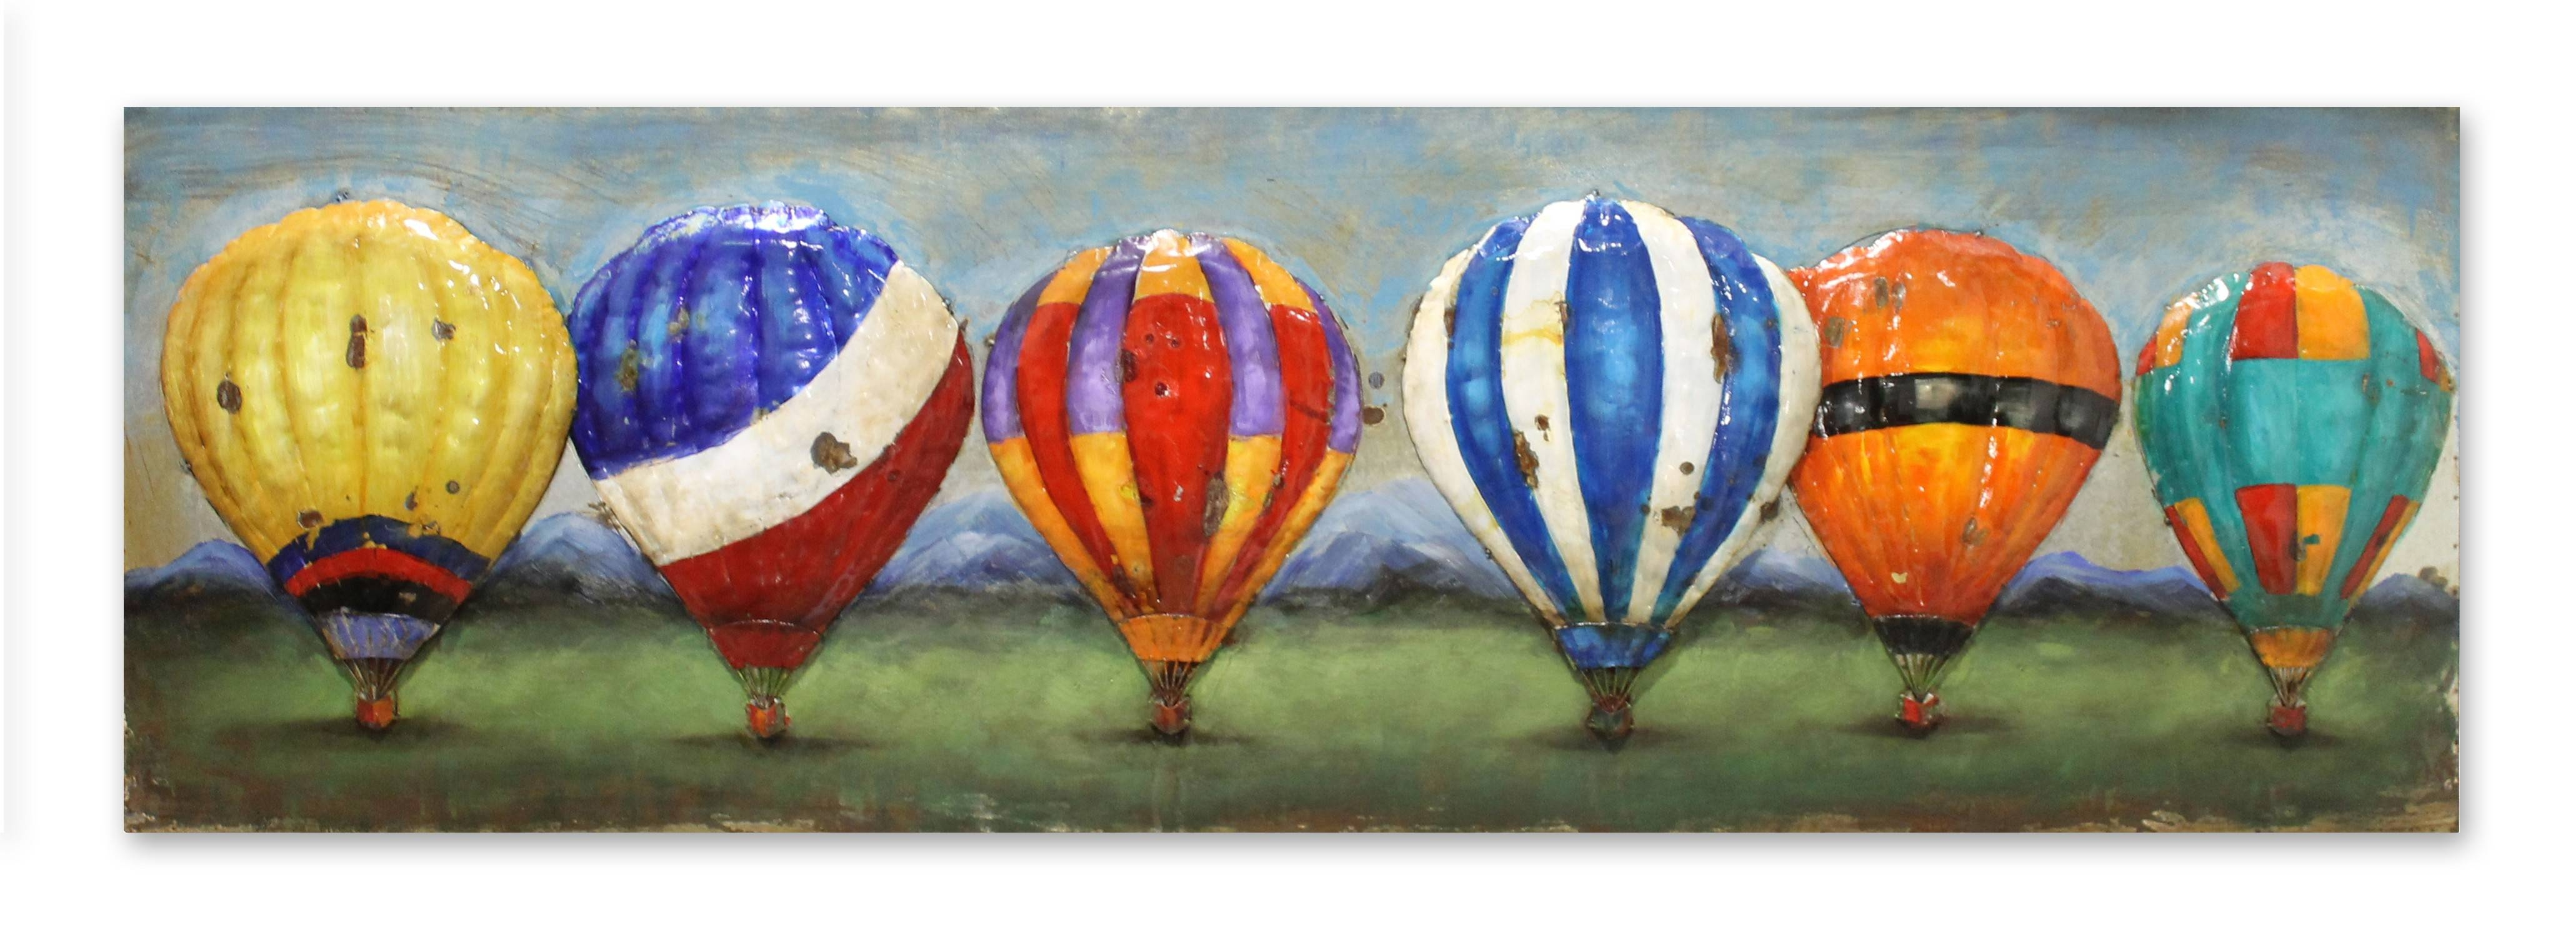 Rainbow' Hot Air Balloons 3D Metal Wall Art – Home & Interiors With Regard To Newest Air Balloon 3D Wall Art (View 16 of 20)